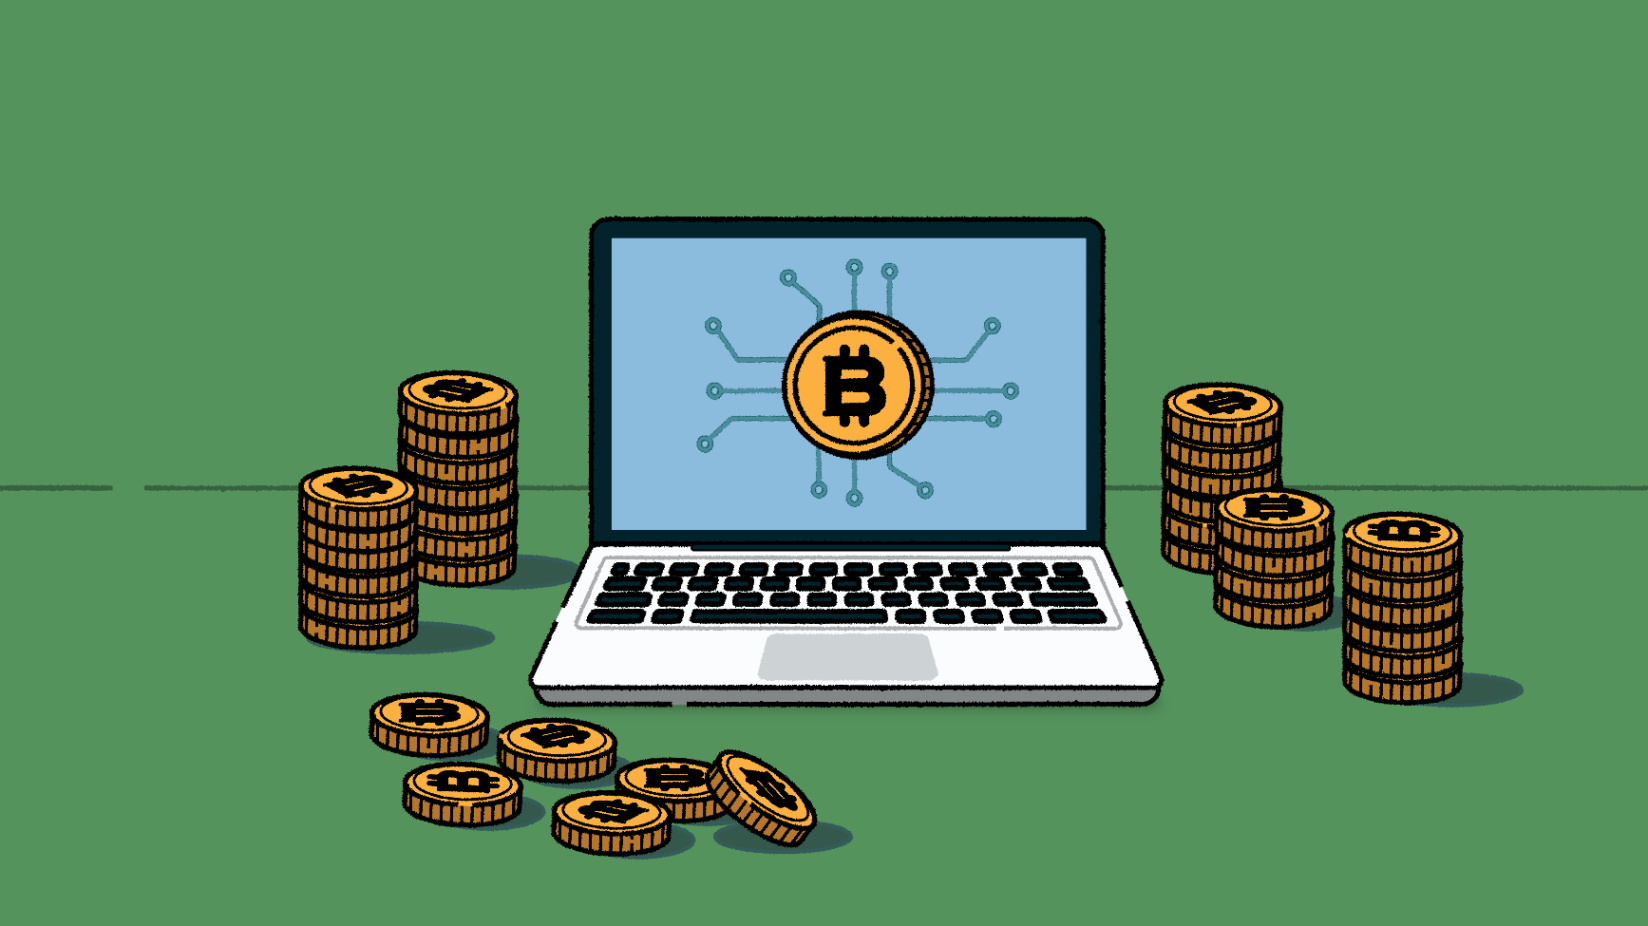 Why Time sees opportunity in Bitcoin for advertisers and consumers